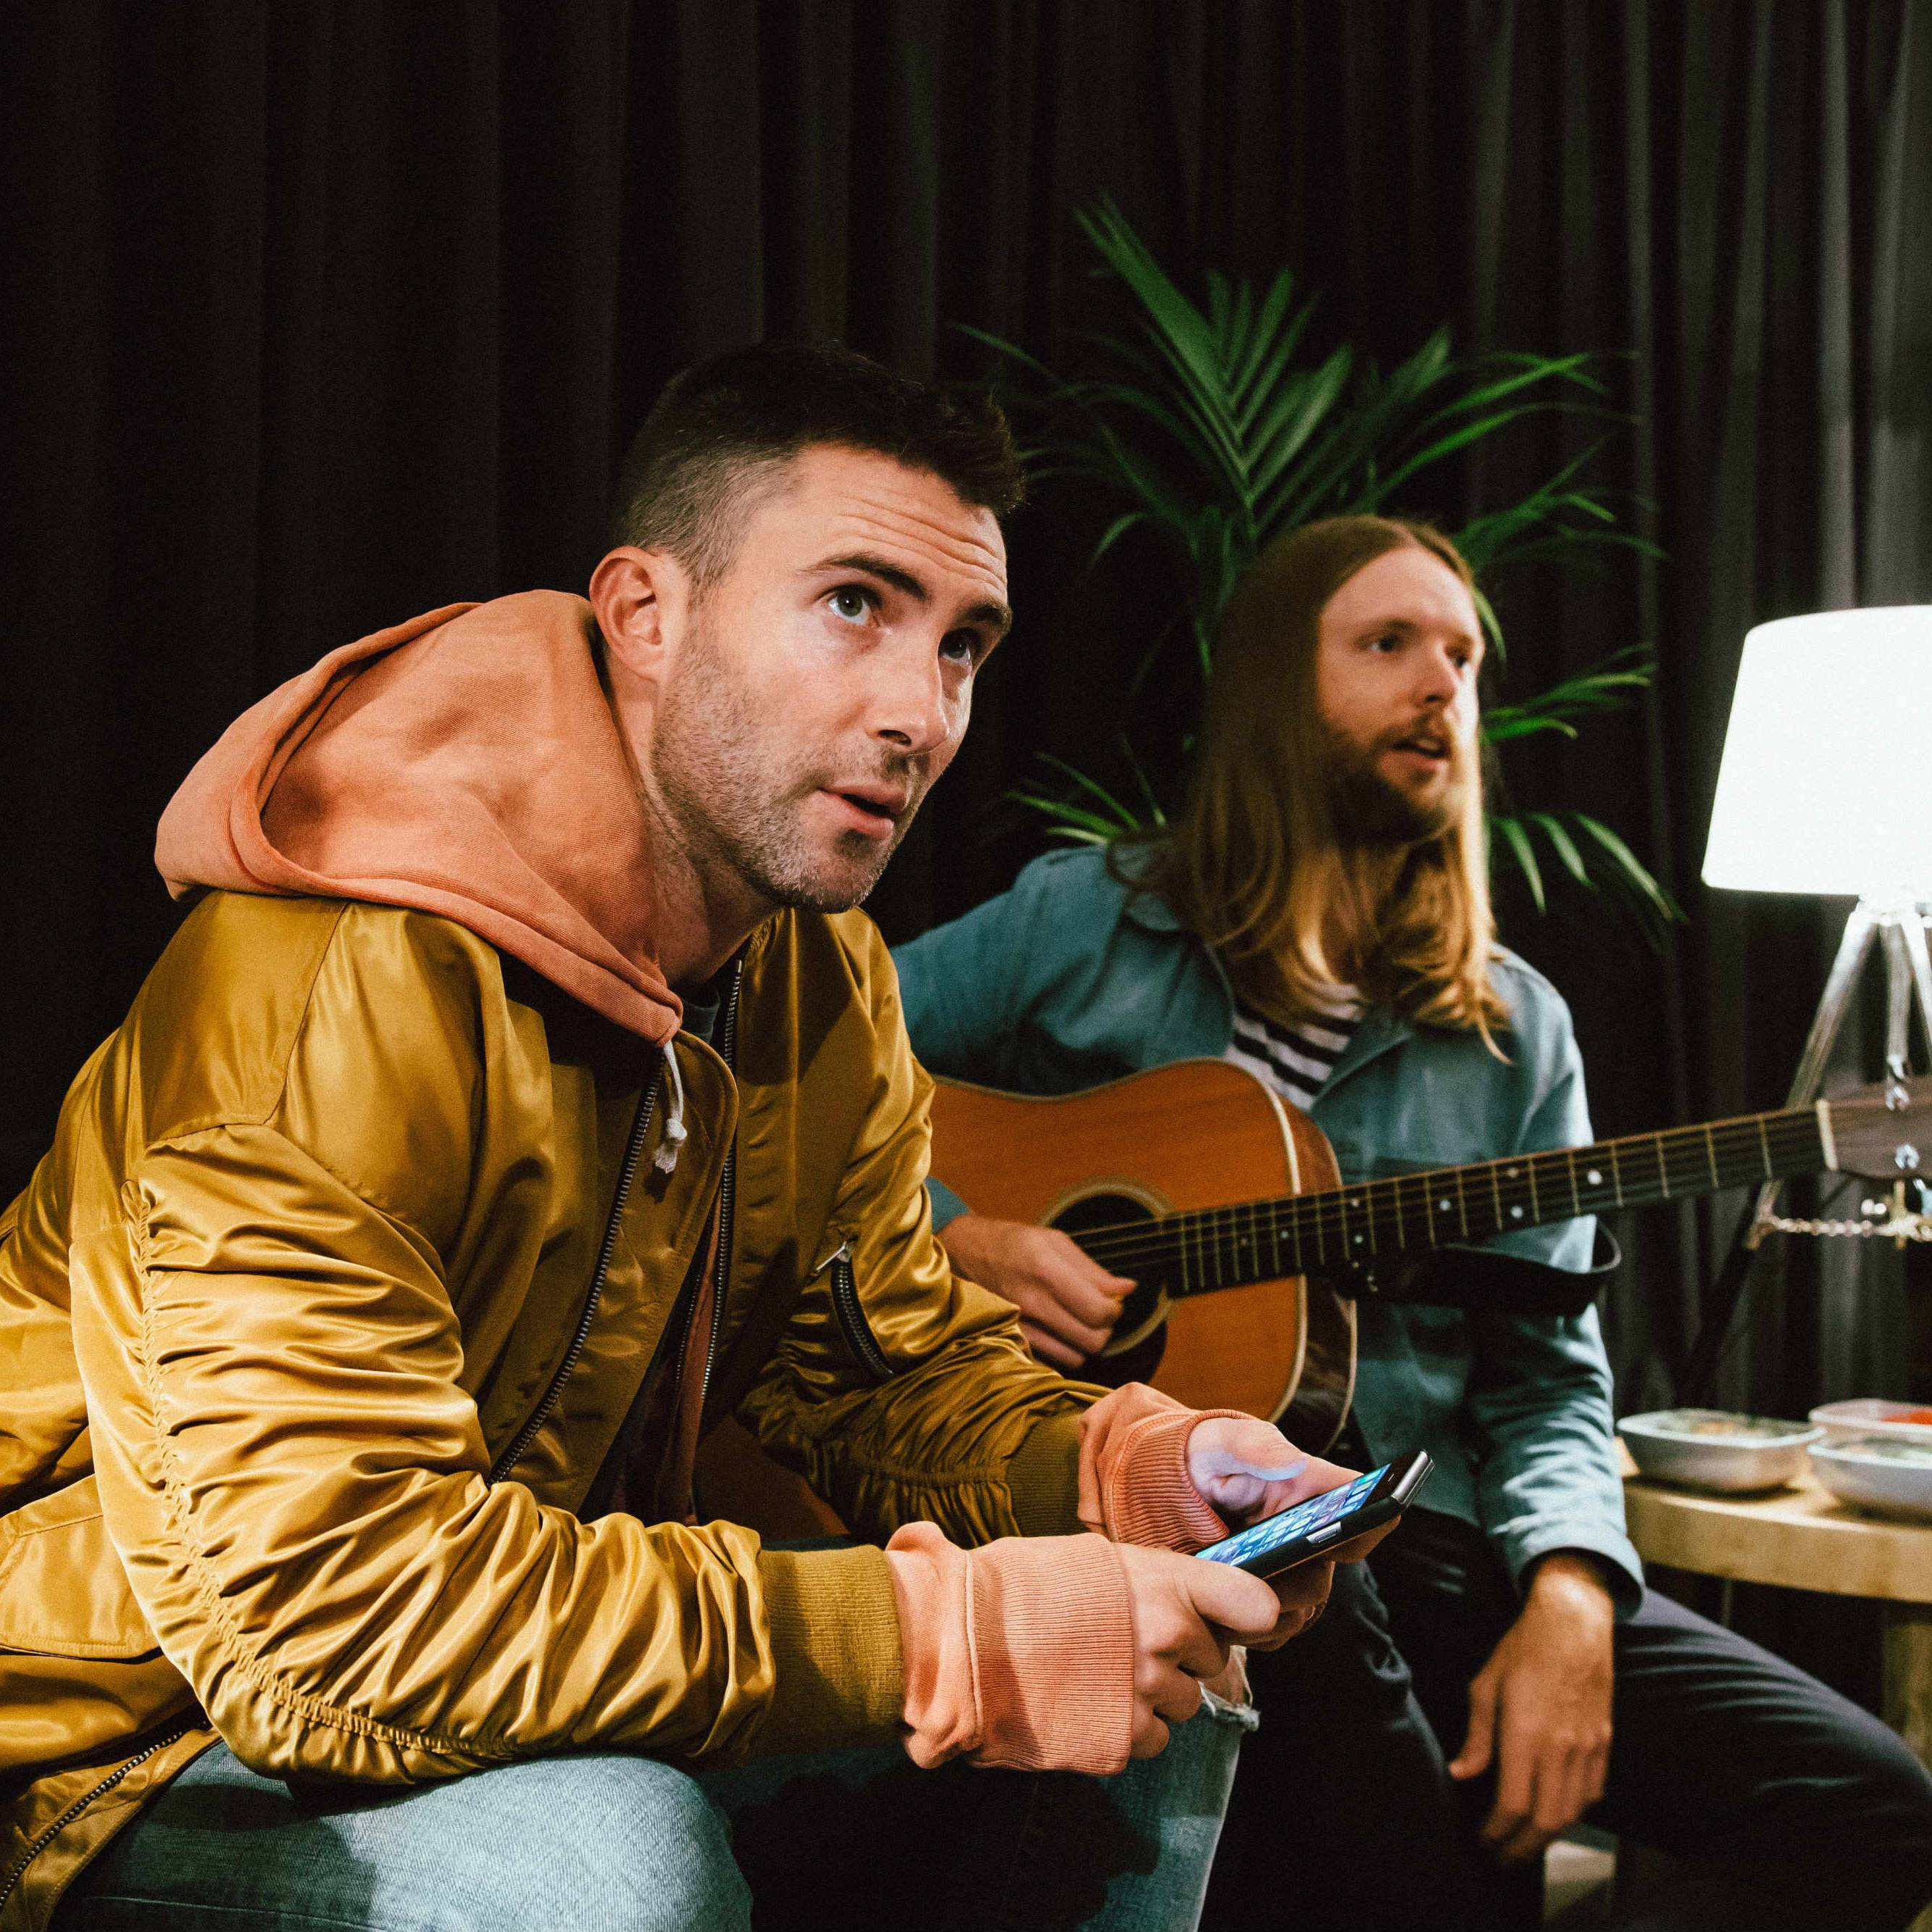 Premiere maroon 5 takes us behind the scenes at rock in rio premiere maroon 5 takes us behind the scenes at rock in rio lisboa live nation tv kristyandbryce Image collections